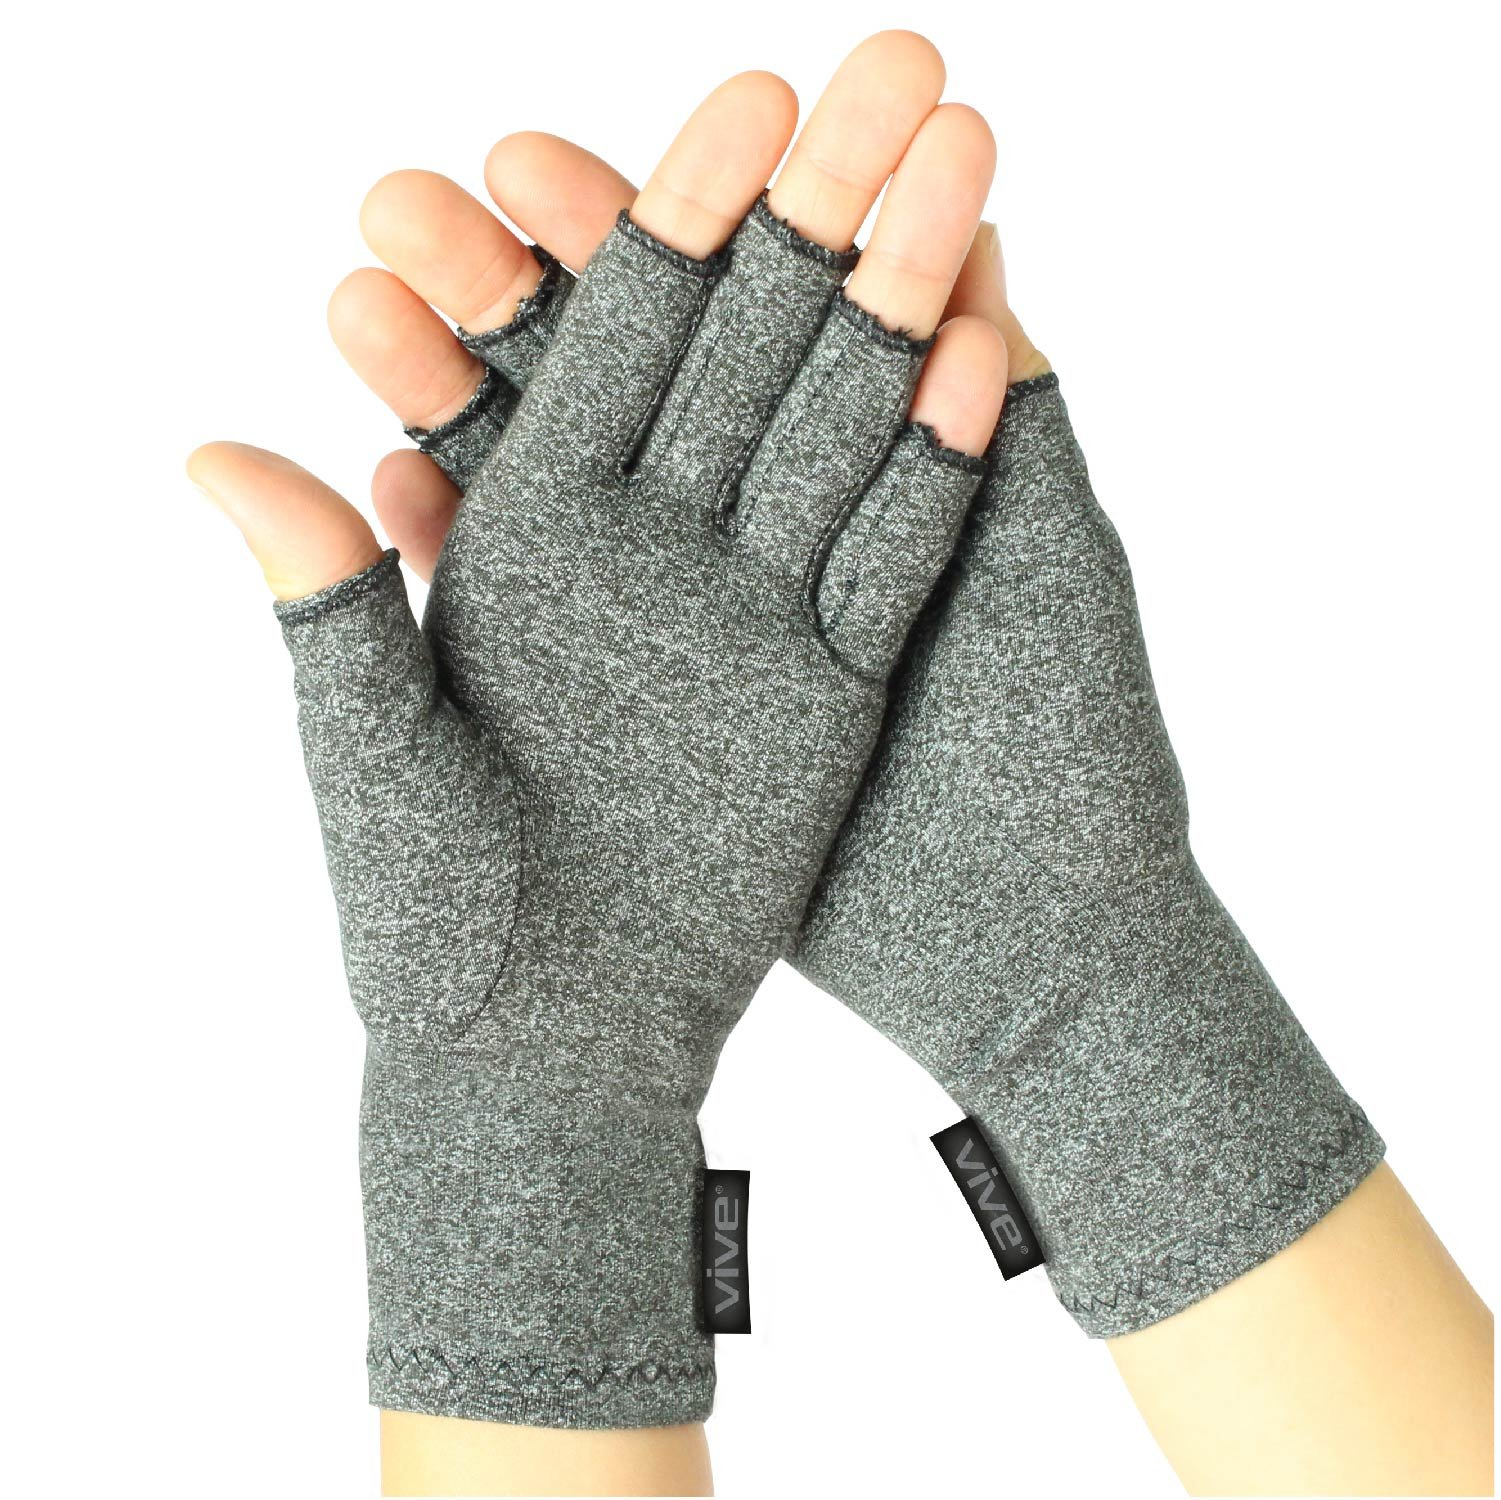 Vive Arthritis Gloves - Compression Glove for Rheumatoid, Osteoarthritis - Heat Hand Gloves for Computer Typing, Arthritic Joint Pain Relief, Carpal Tunnel - Men, Women - Open Finger Thumb (Large)